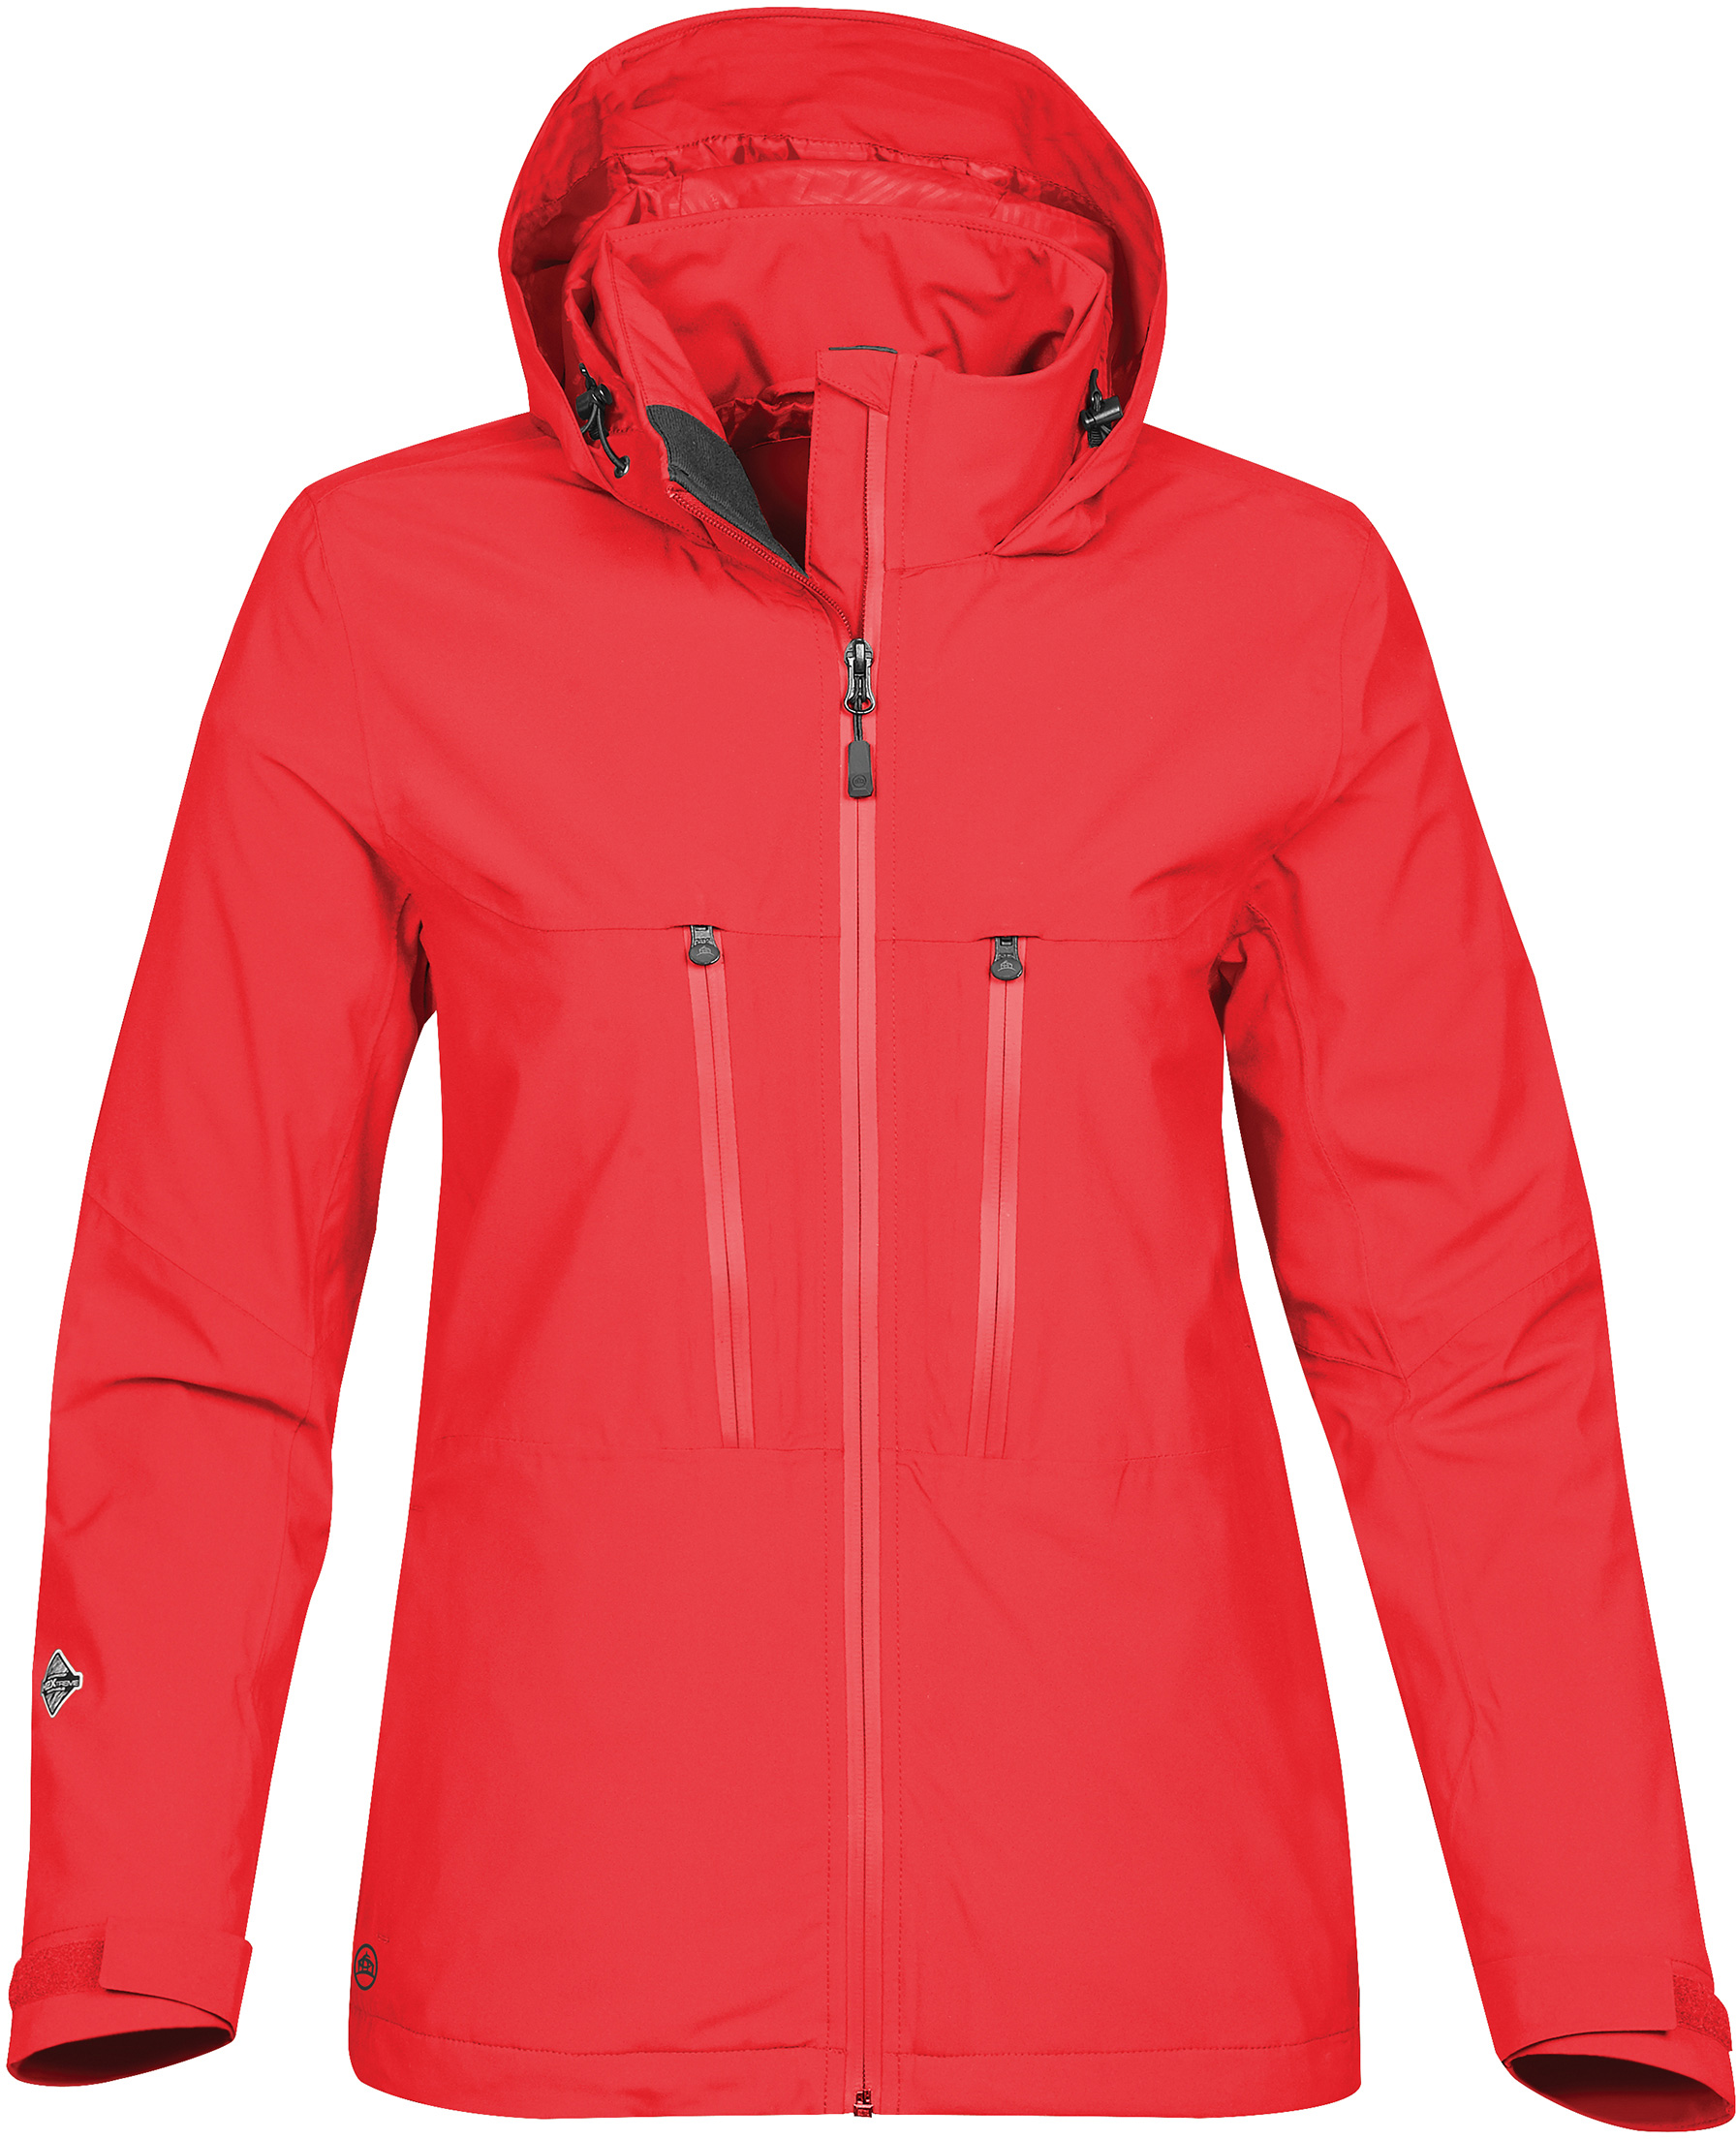 Stormtech HRX-1W - Women's Hurricane Shell Jacket